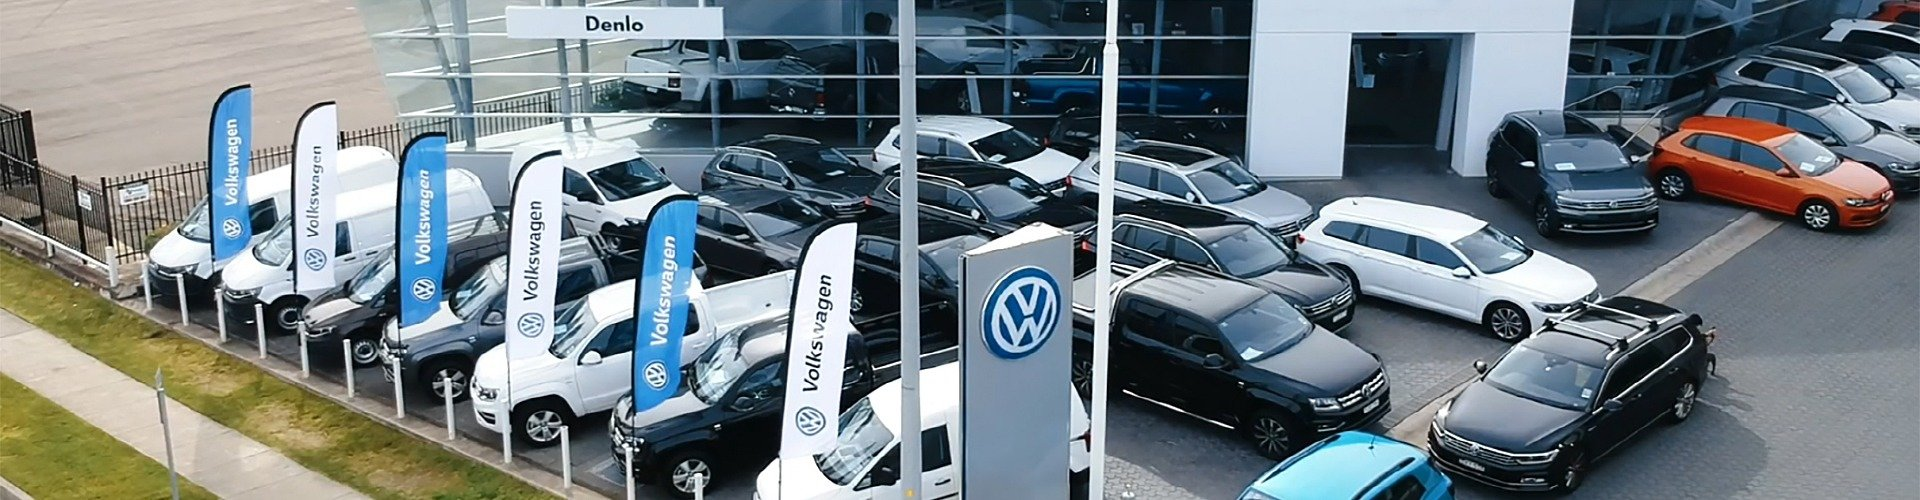 Denlo Volkswagen - Contact Us